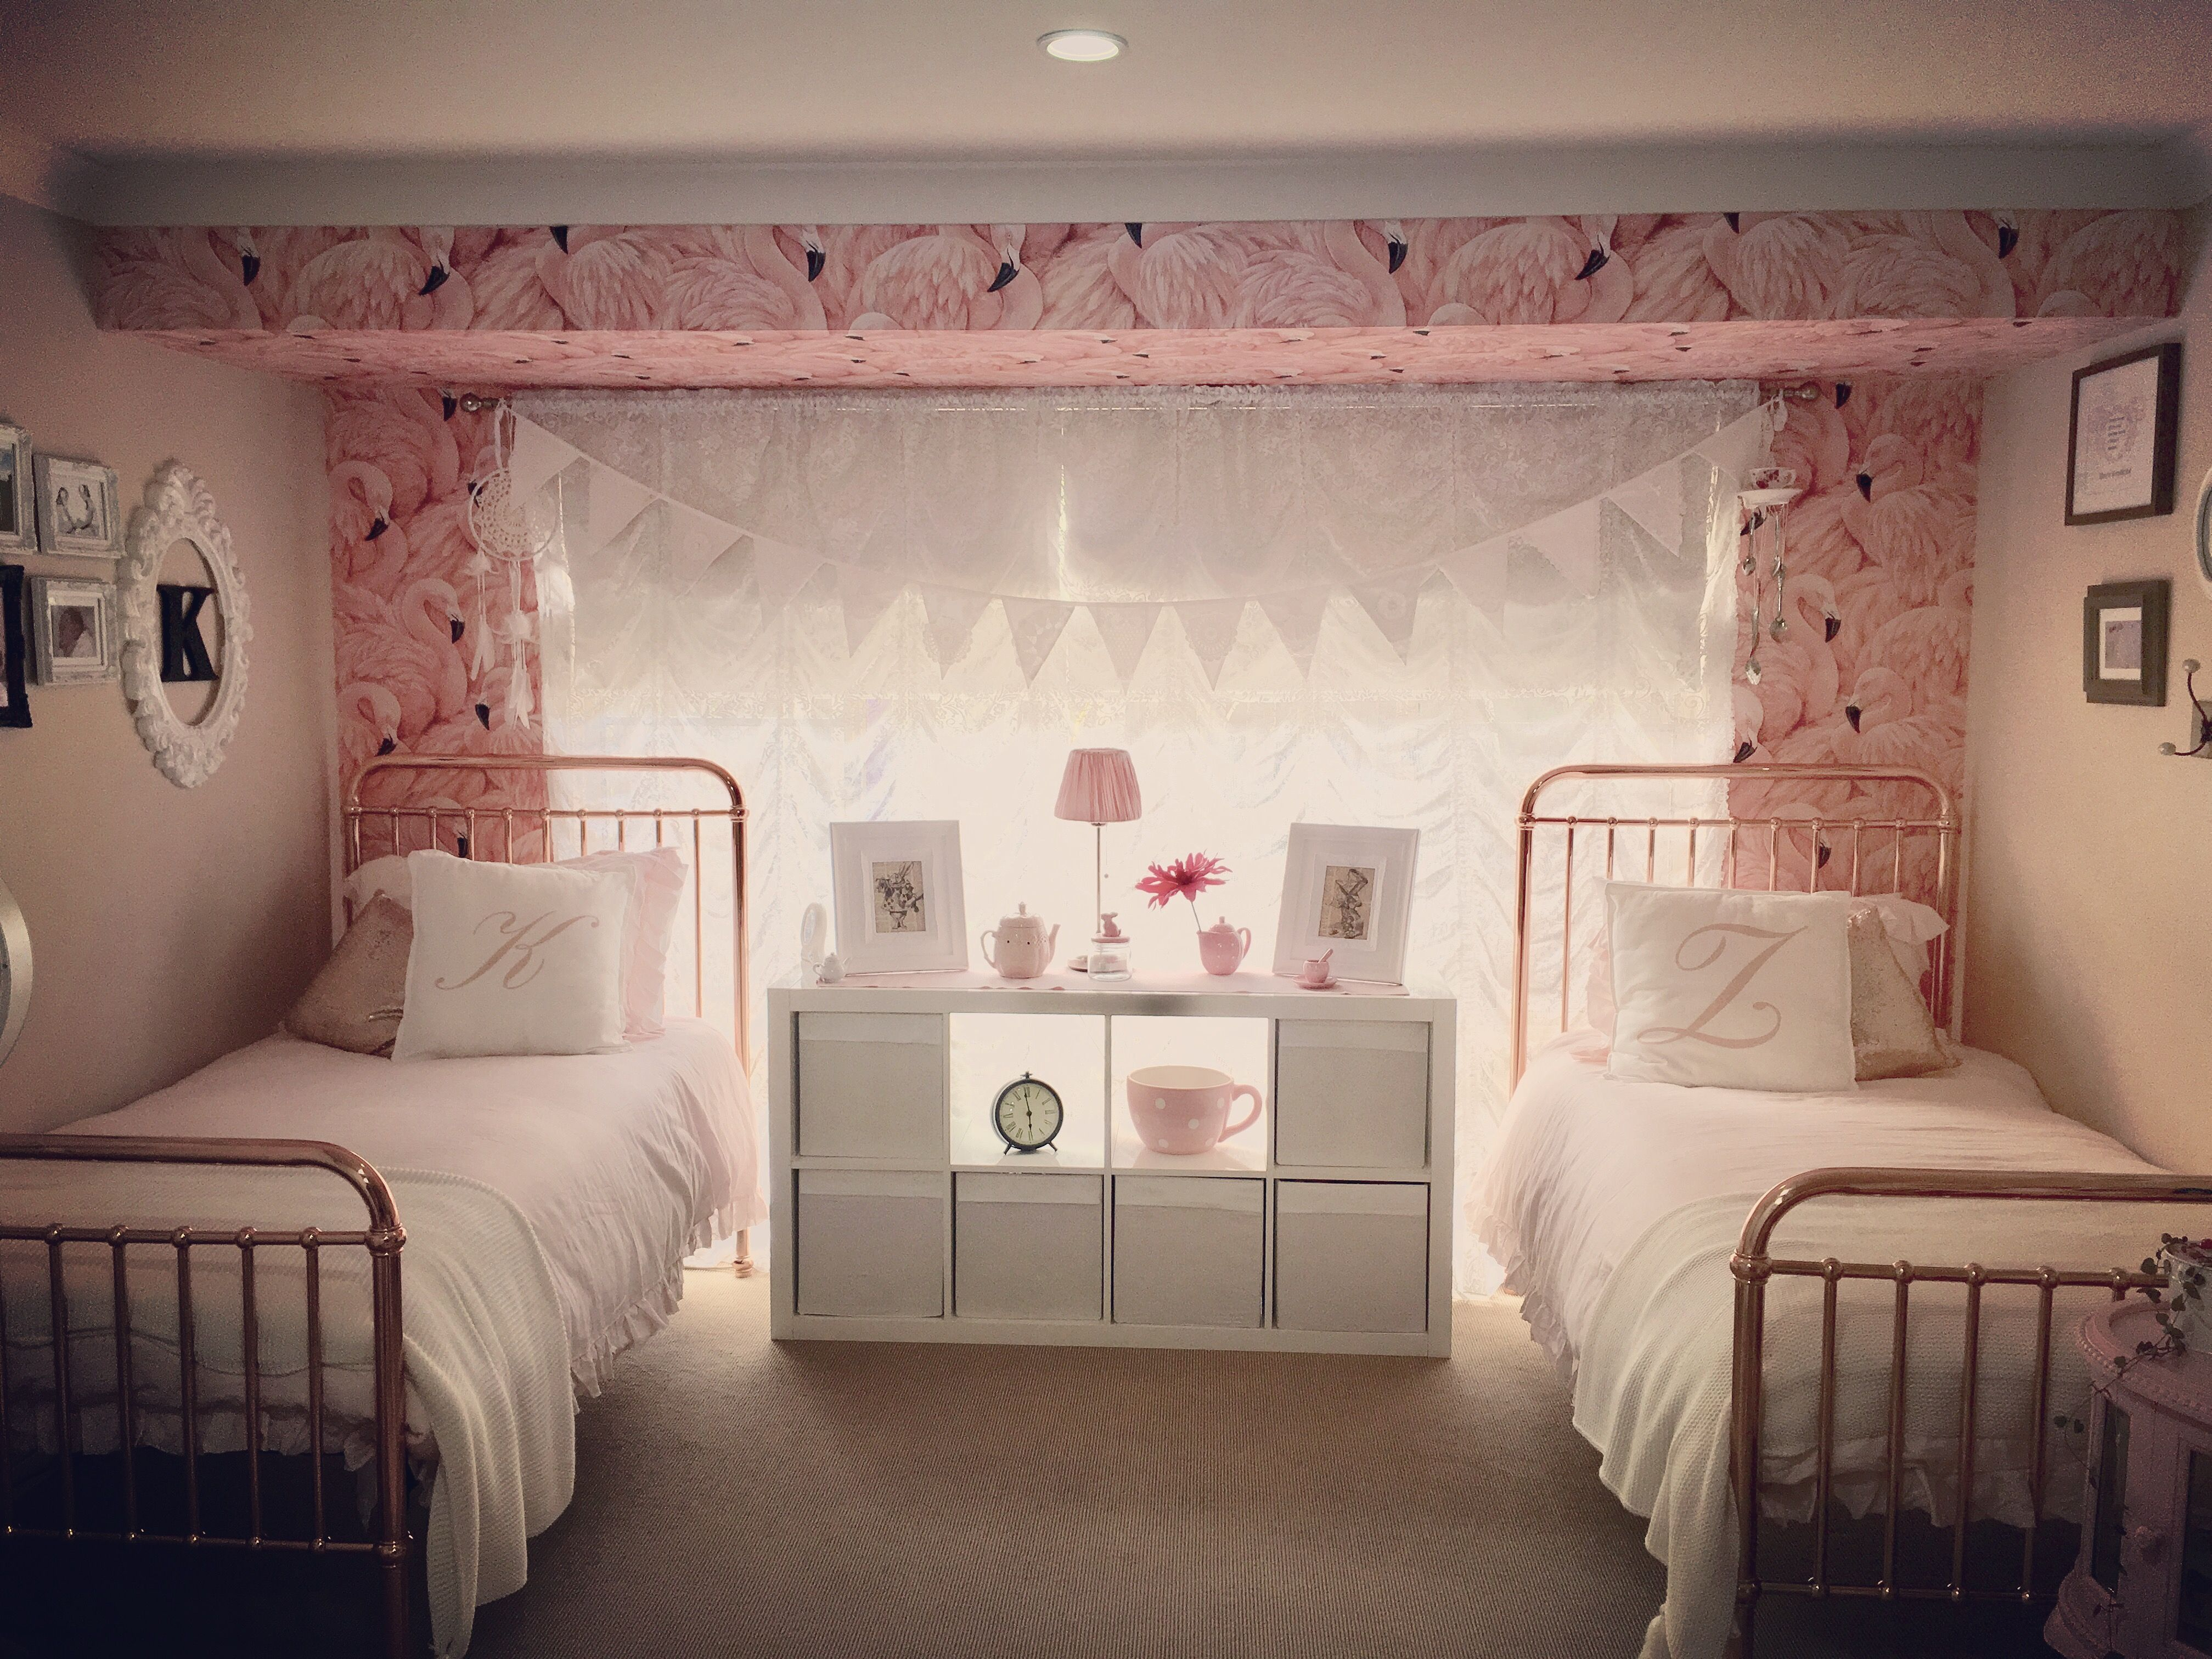 incy interiors eden rose gold beds flamingo wallpaper rose gold alice in wonderland inspired. Black Bedroom Furniture Sets. Home Design Ideas